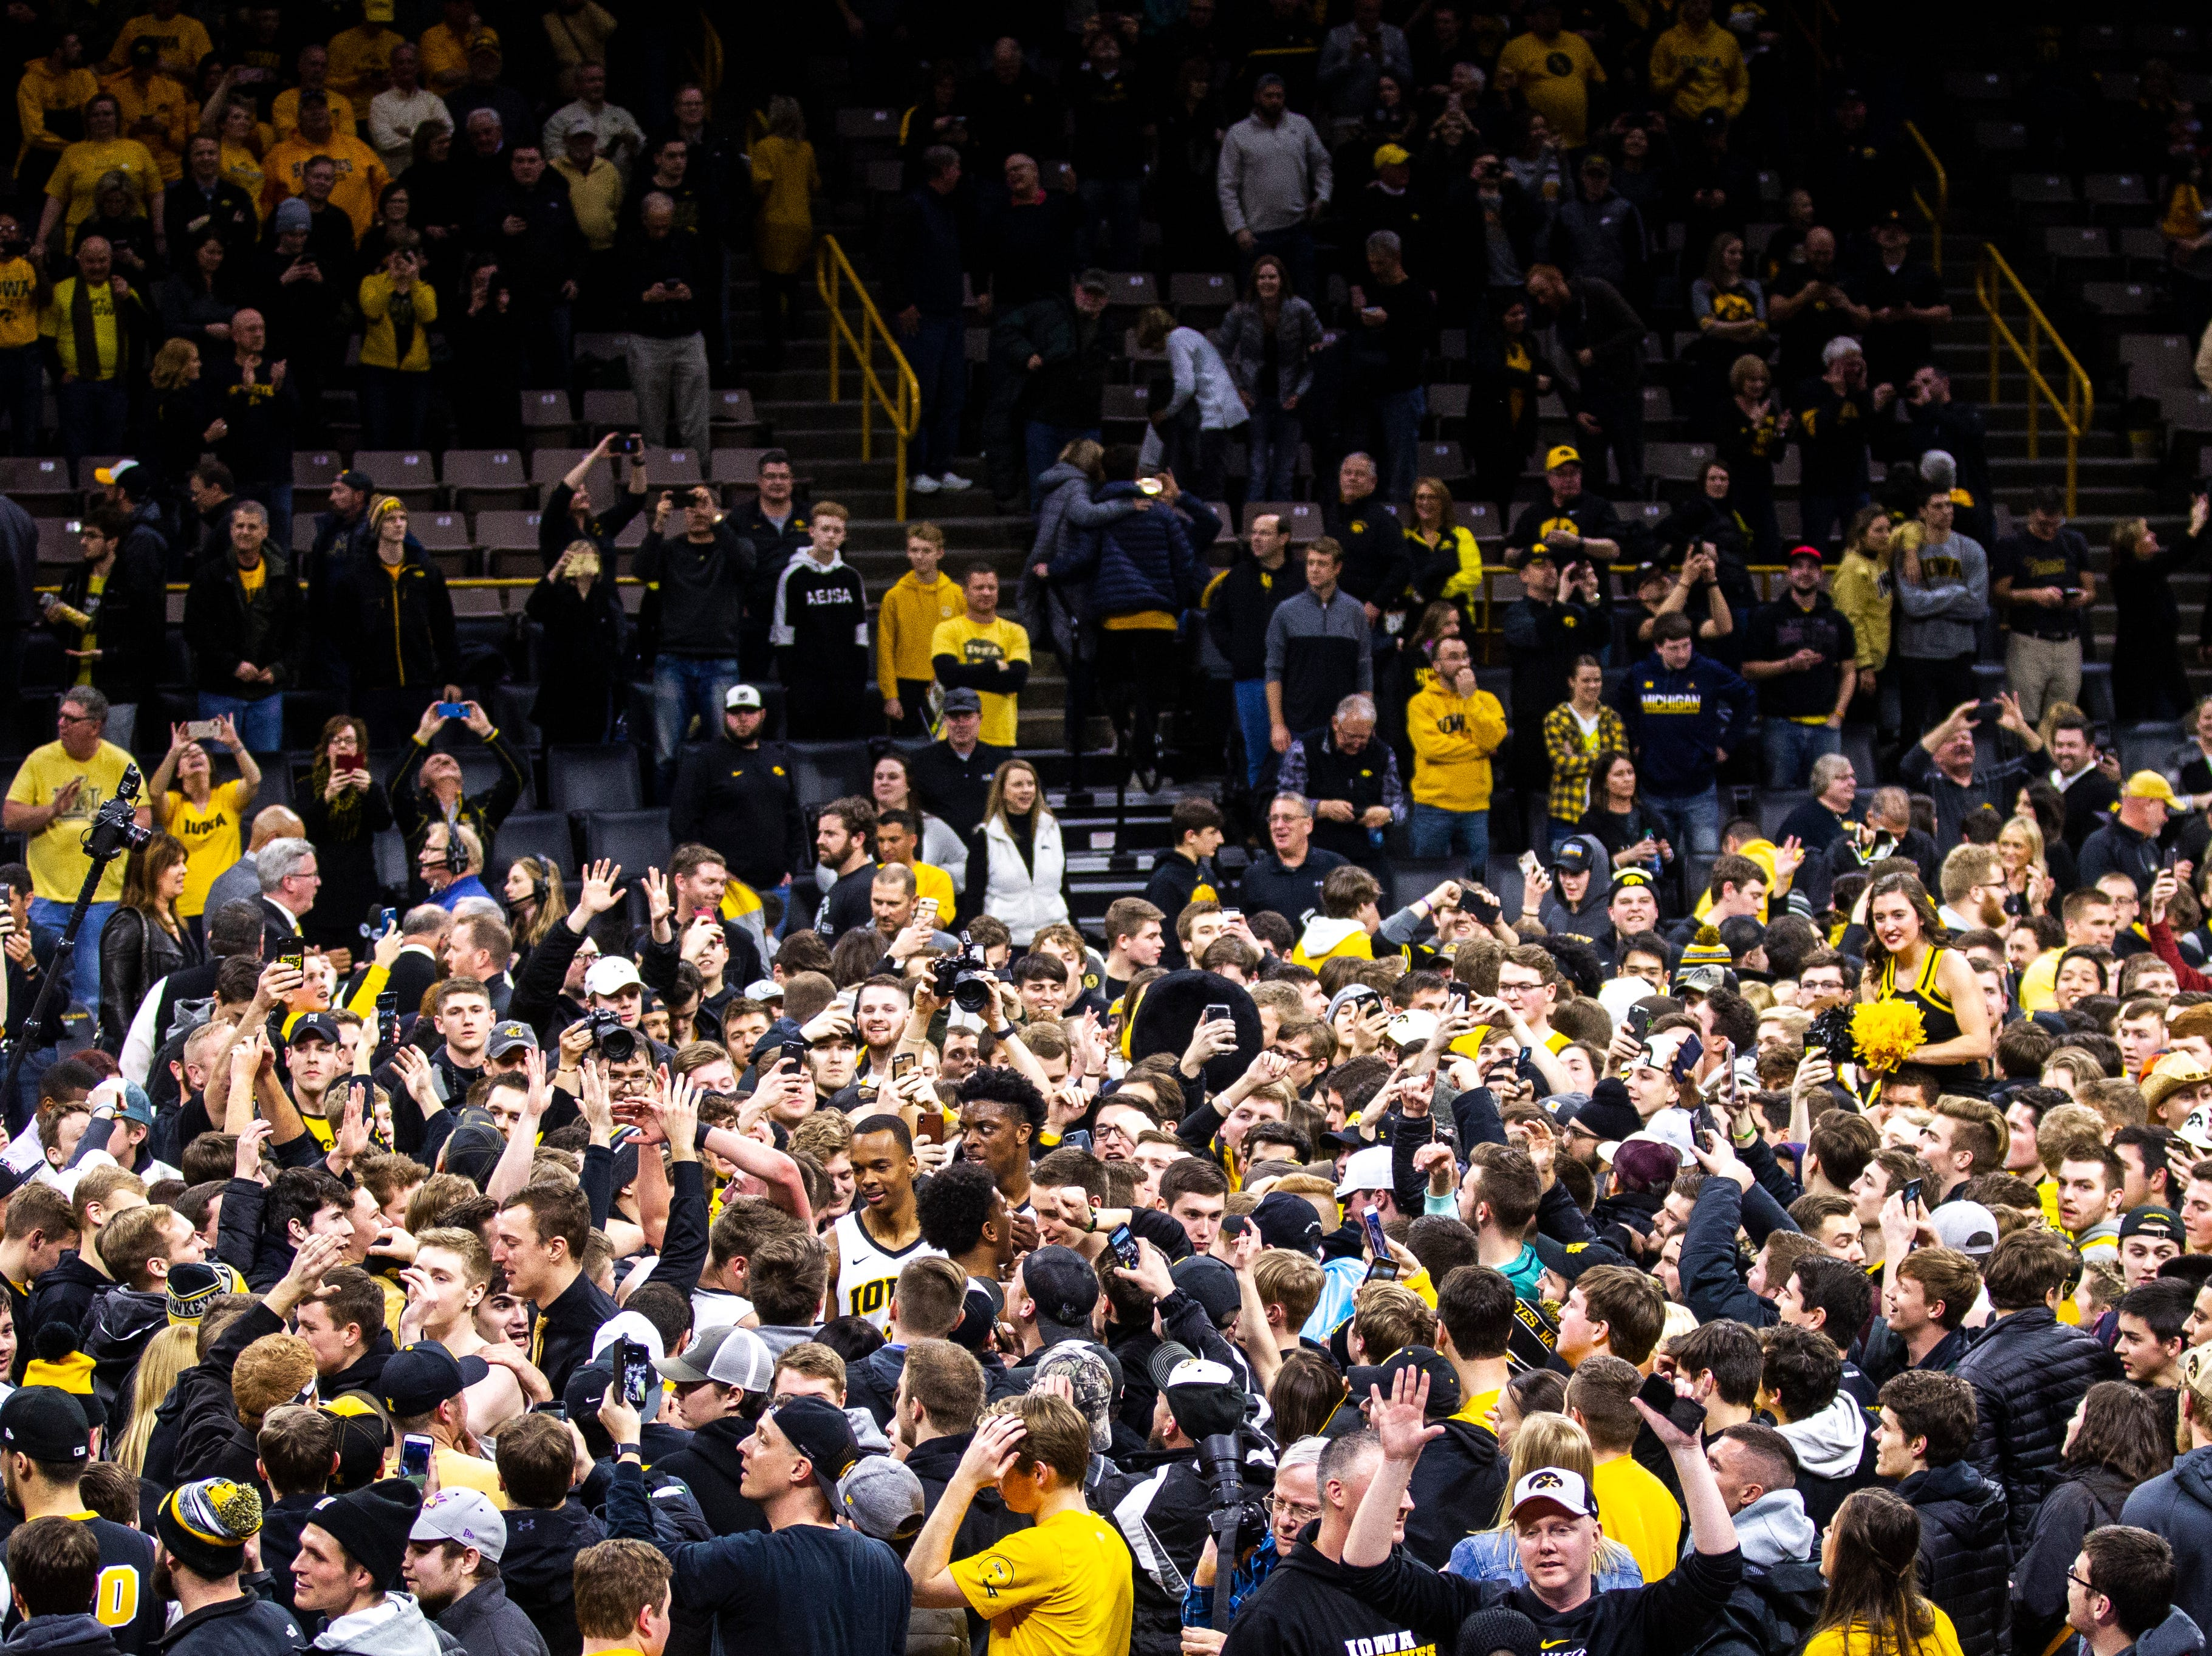 Iowa fans celebrate while Hawkeyes basketball players (from bottom left diagonally) Cordell Pemsl, Michael Baer, Jack Nunge, Maishe Dailey and Tyler Cook make their way off the court during a NCAA Big Ten Conference men's basketball game on Friday, Feb. 1, 2019, at Carver-Hawkeye Arena in Iowa City, Iowa. The Hawkeyes defeated Michigan's Wolverines, 74-59.